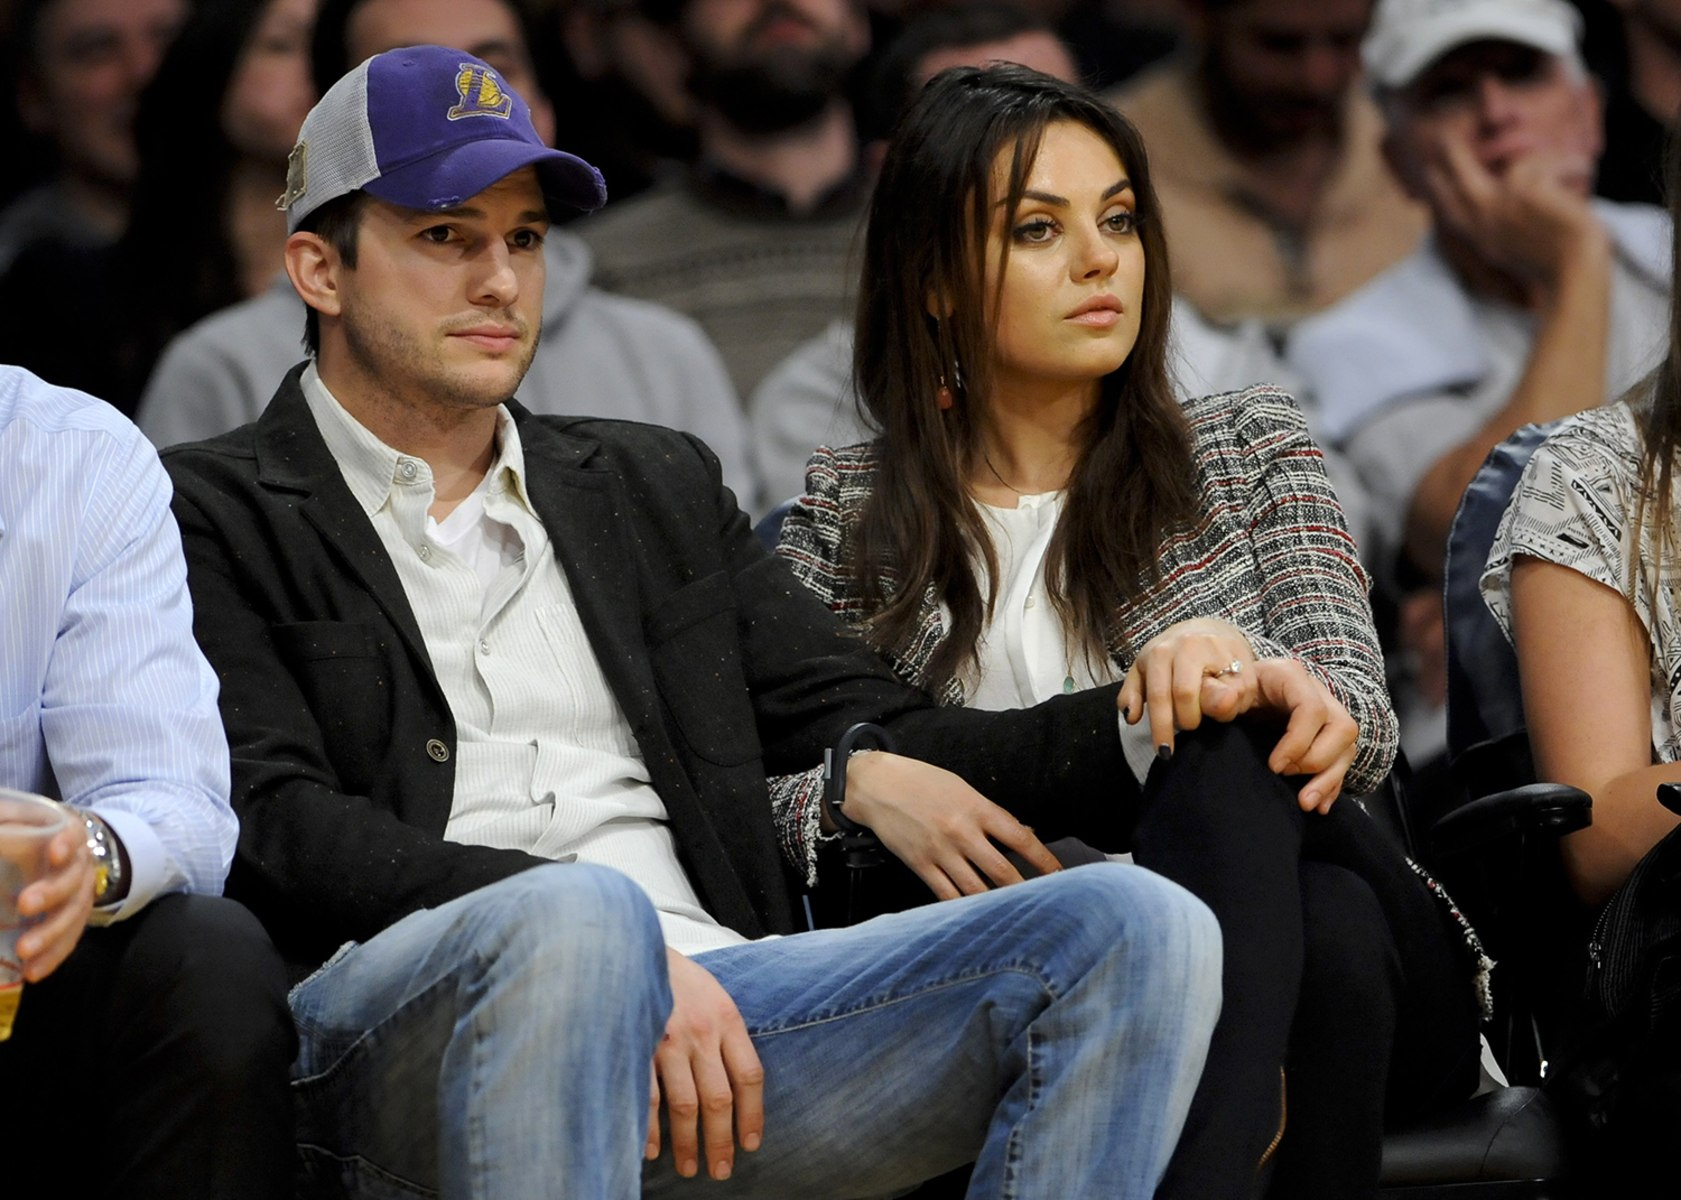 Image: Ashton Kutcher and Mila Kunis